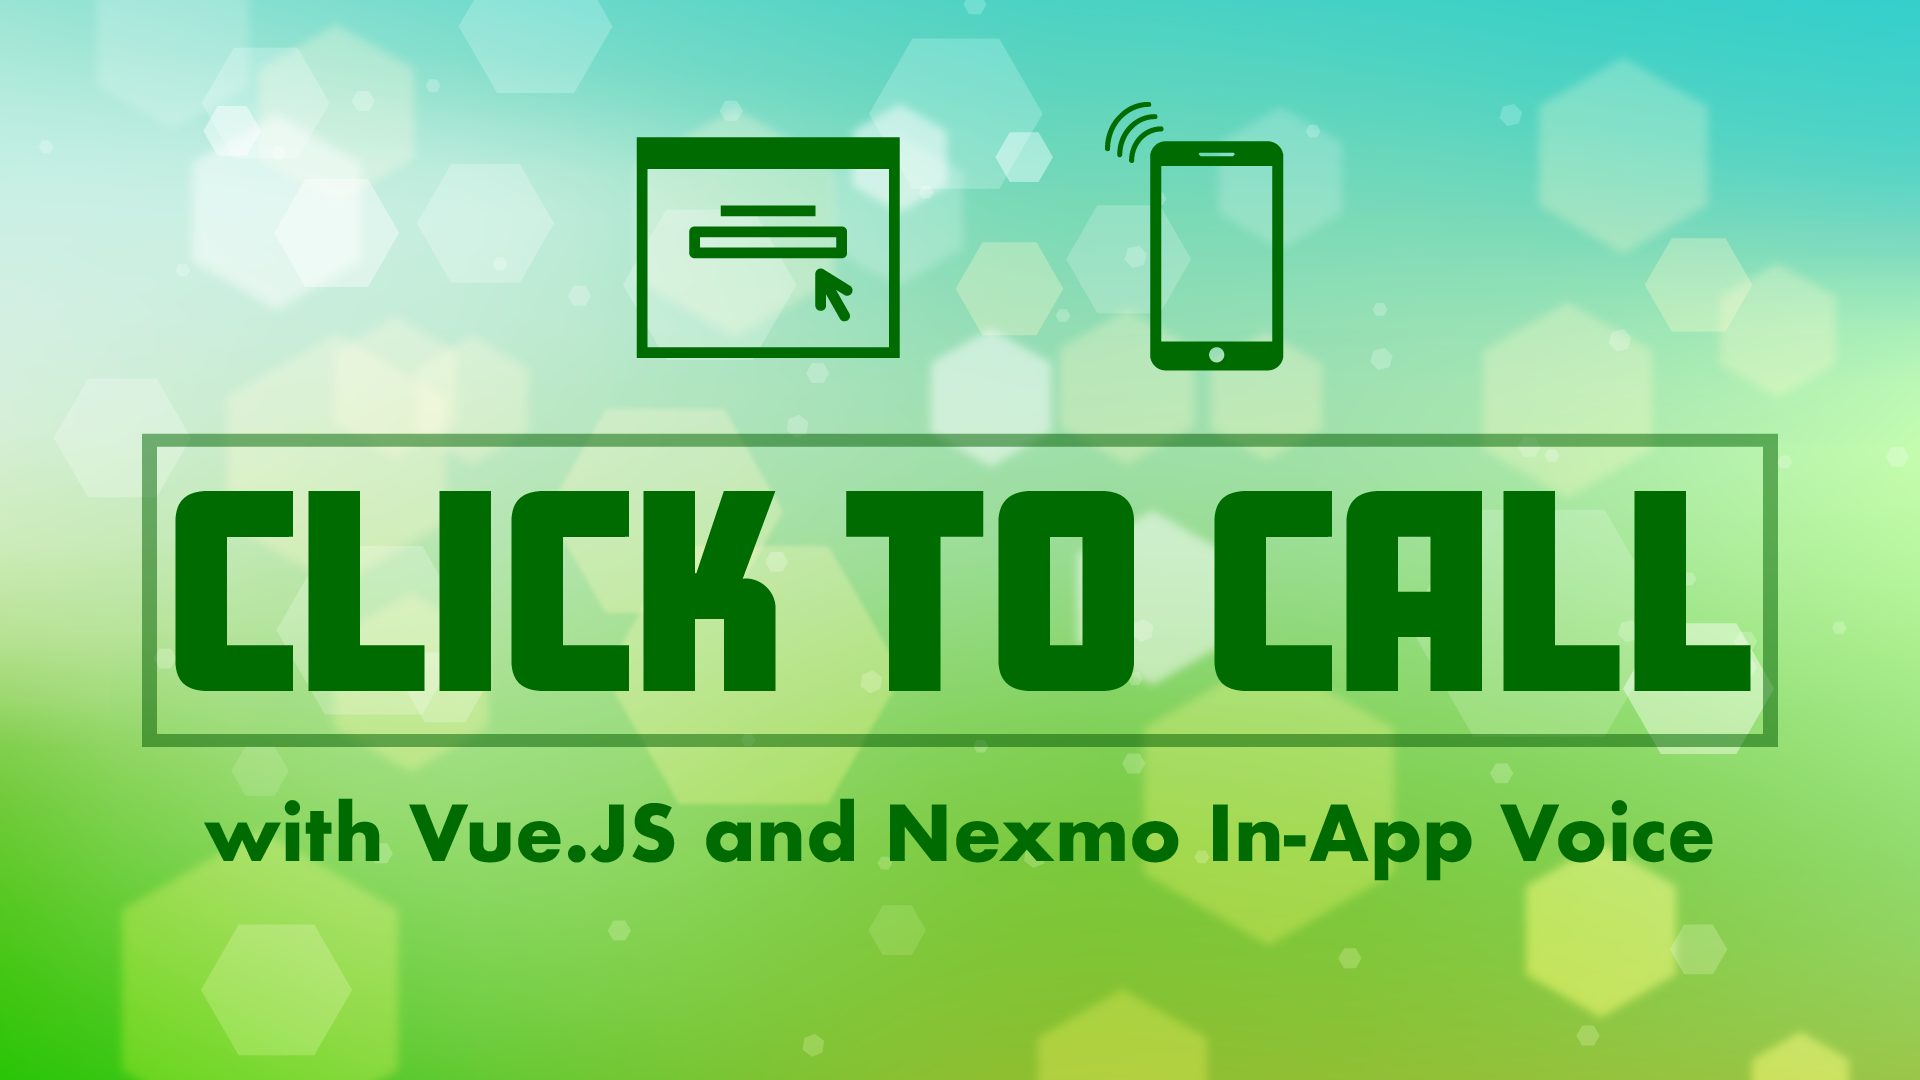 Making Phone Calls from a Web Browser With Vue.js and Vonage